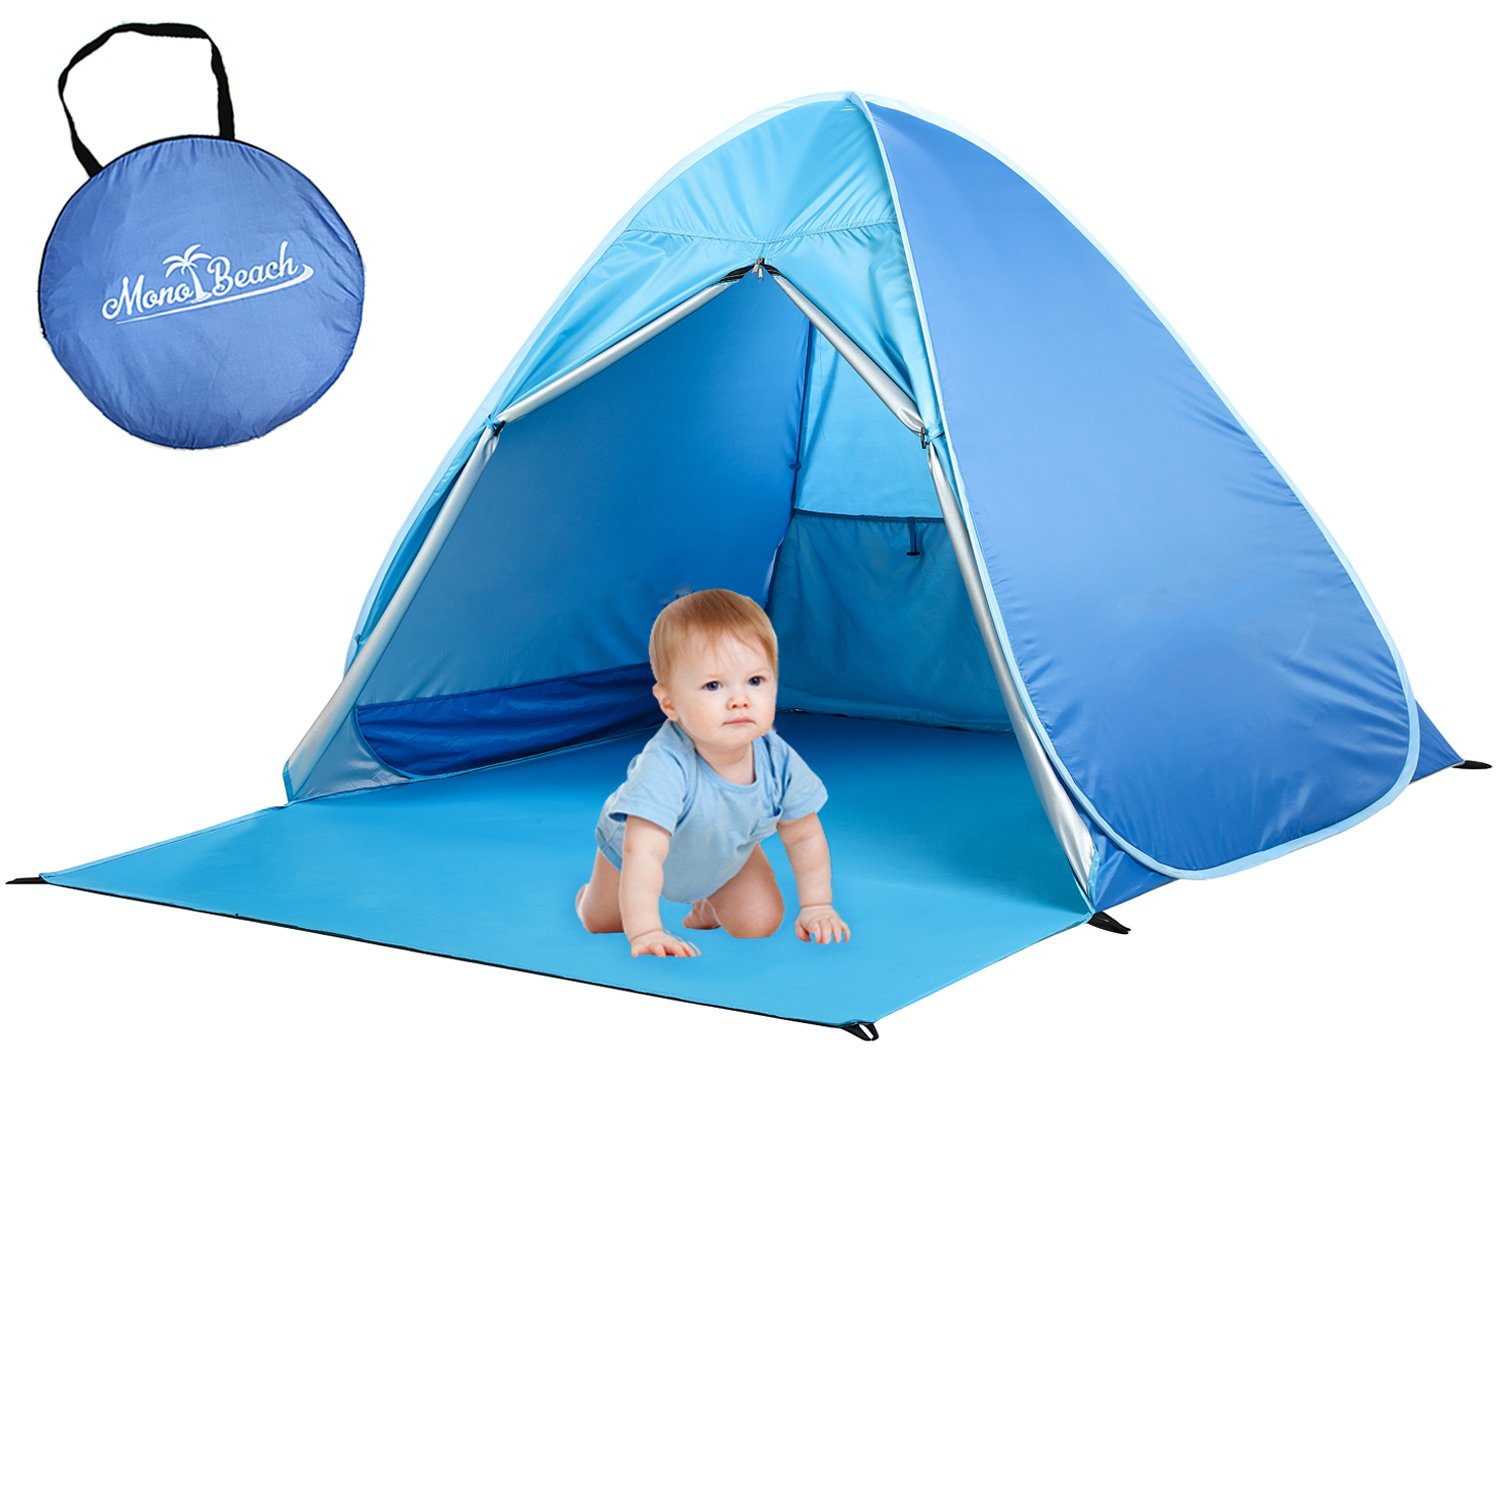 MonoBeach Baby Beach Tent Automatic Pop Up Shade Cabana Portable UV Sun Shelter  sc 1 st  Amazon.com & Amazon.com: Hippo Creation UV Protection Baby Beach Tent with Pool ...